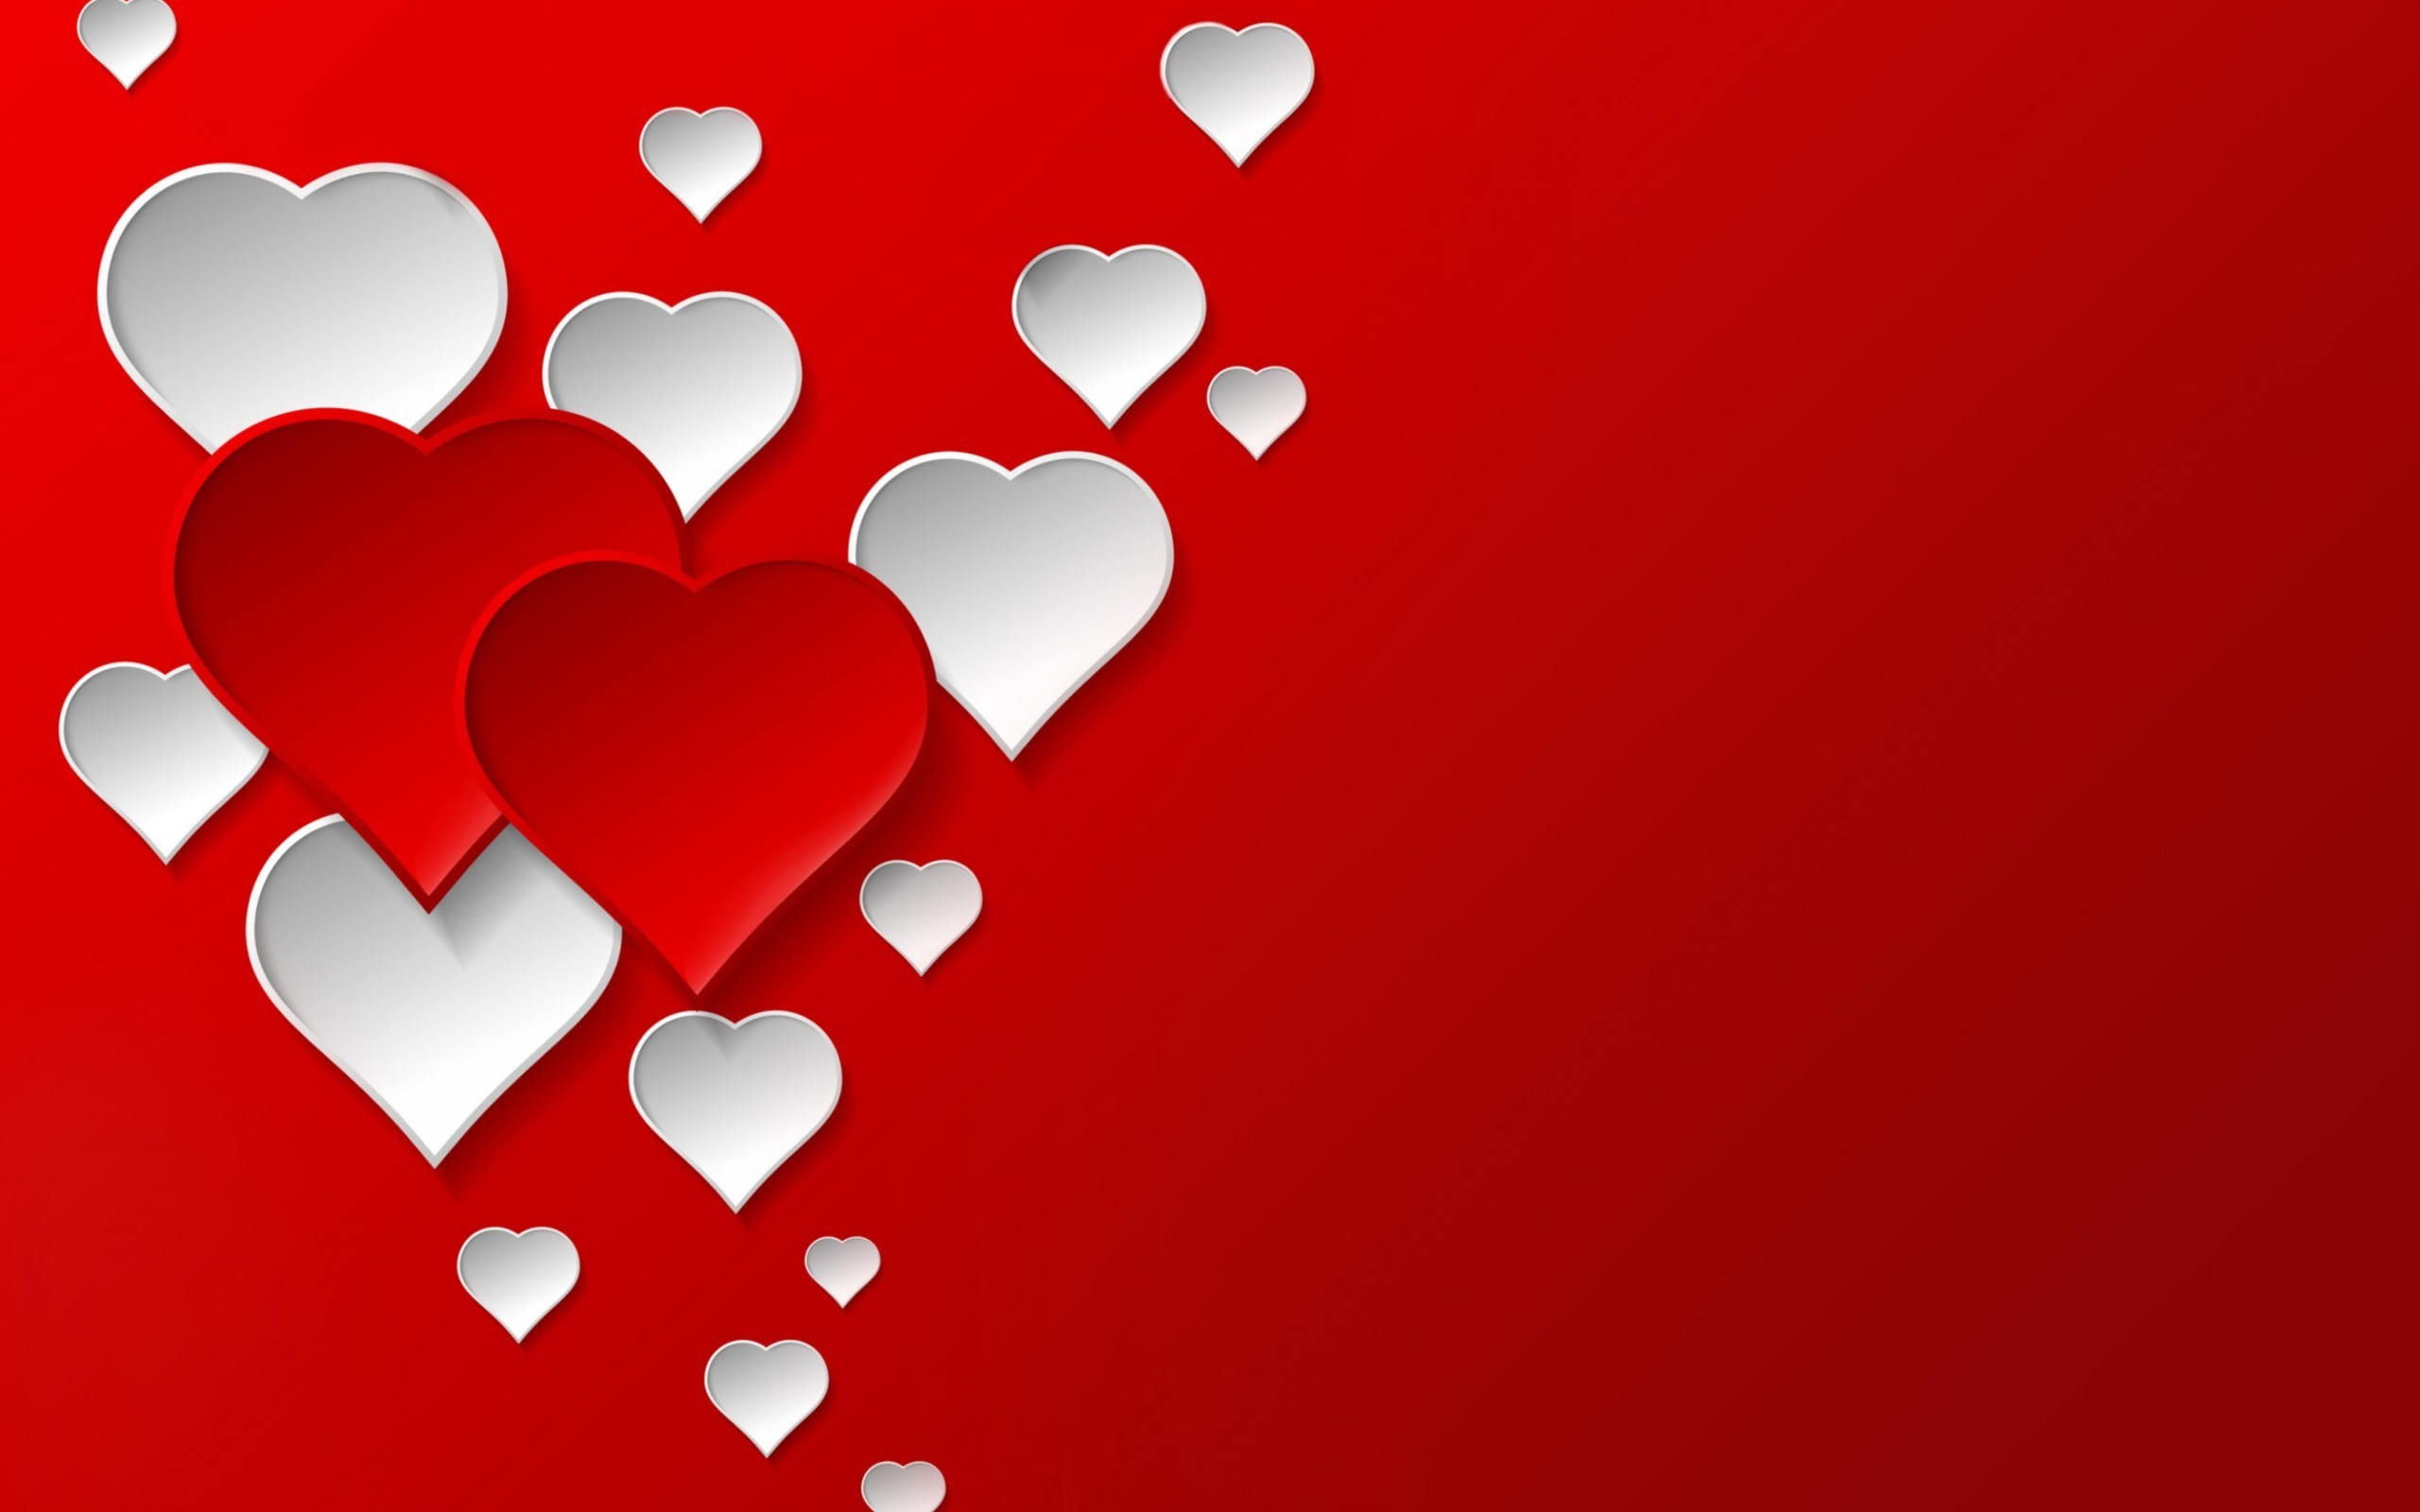 Valentine's Day – Red and White Hearts wallpaper